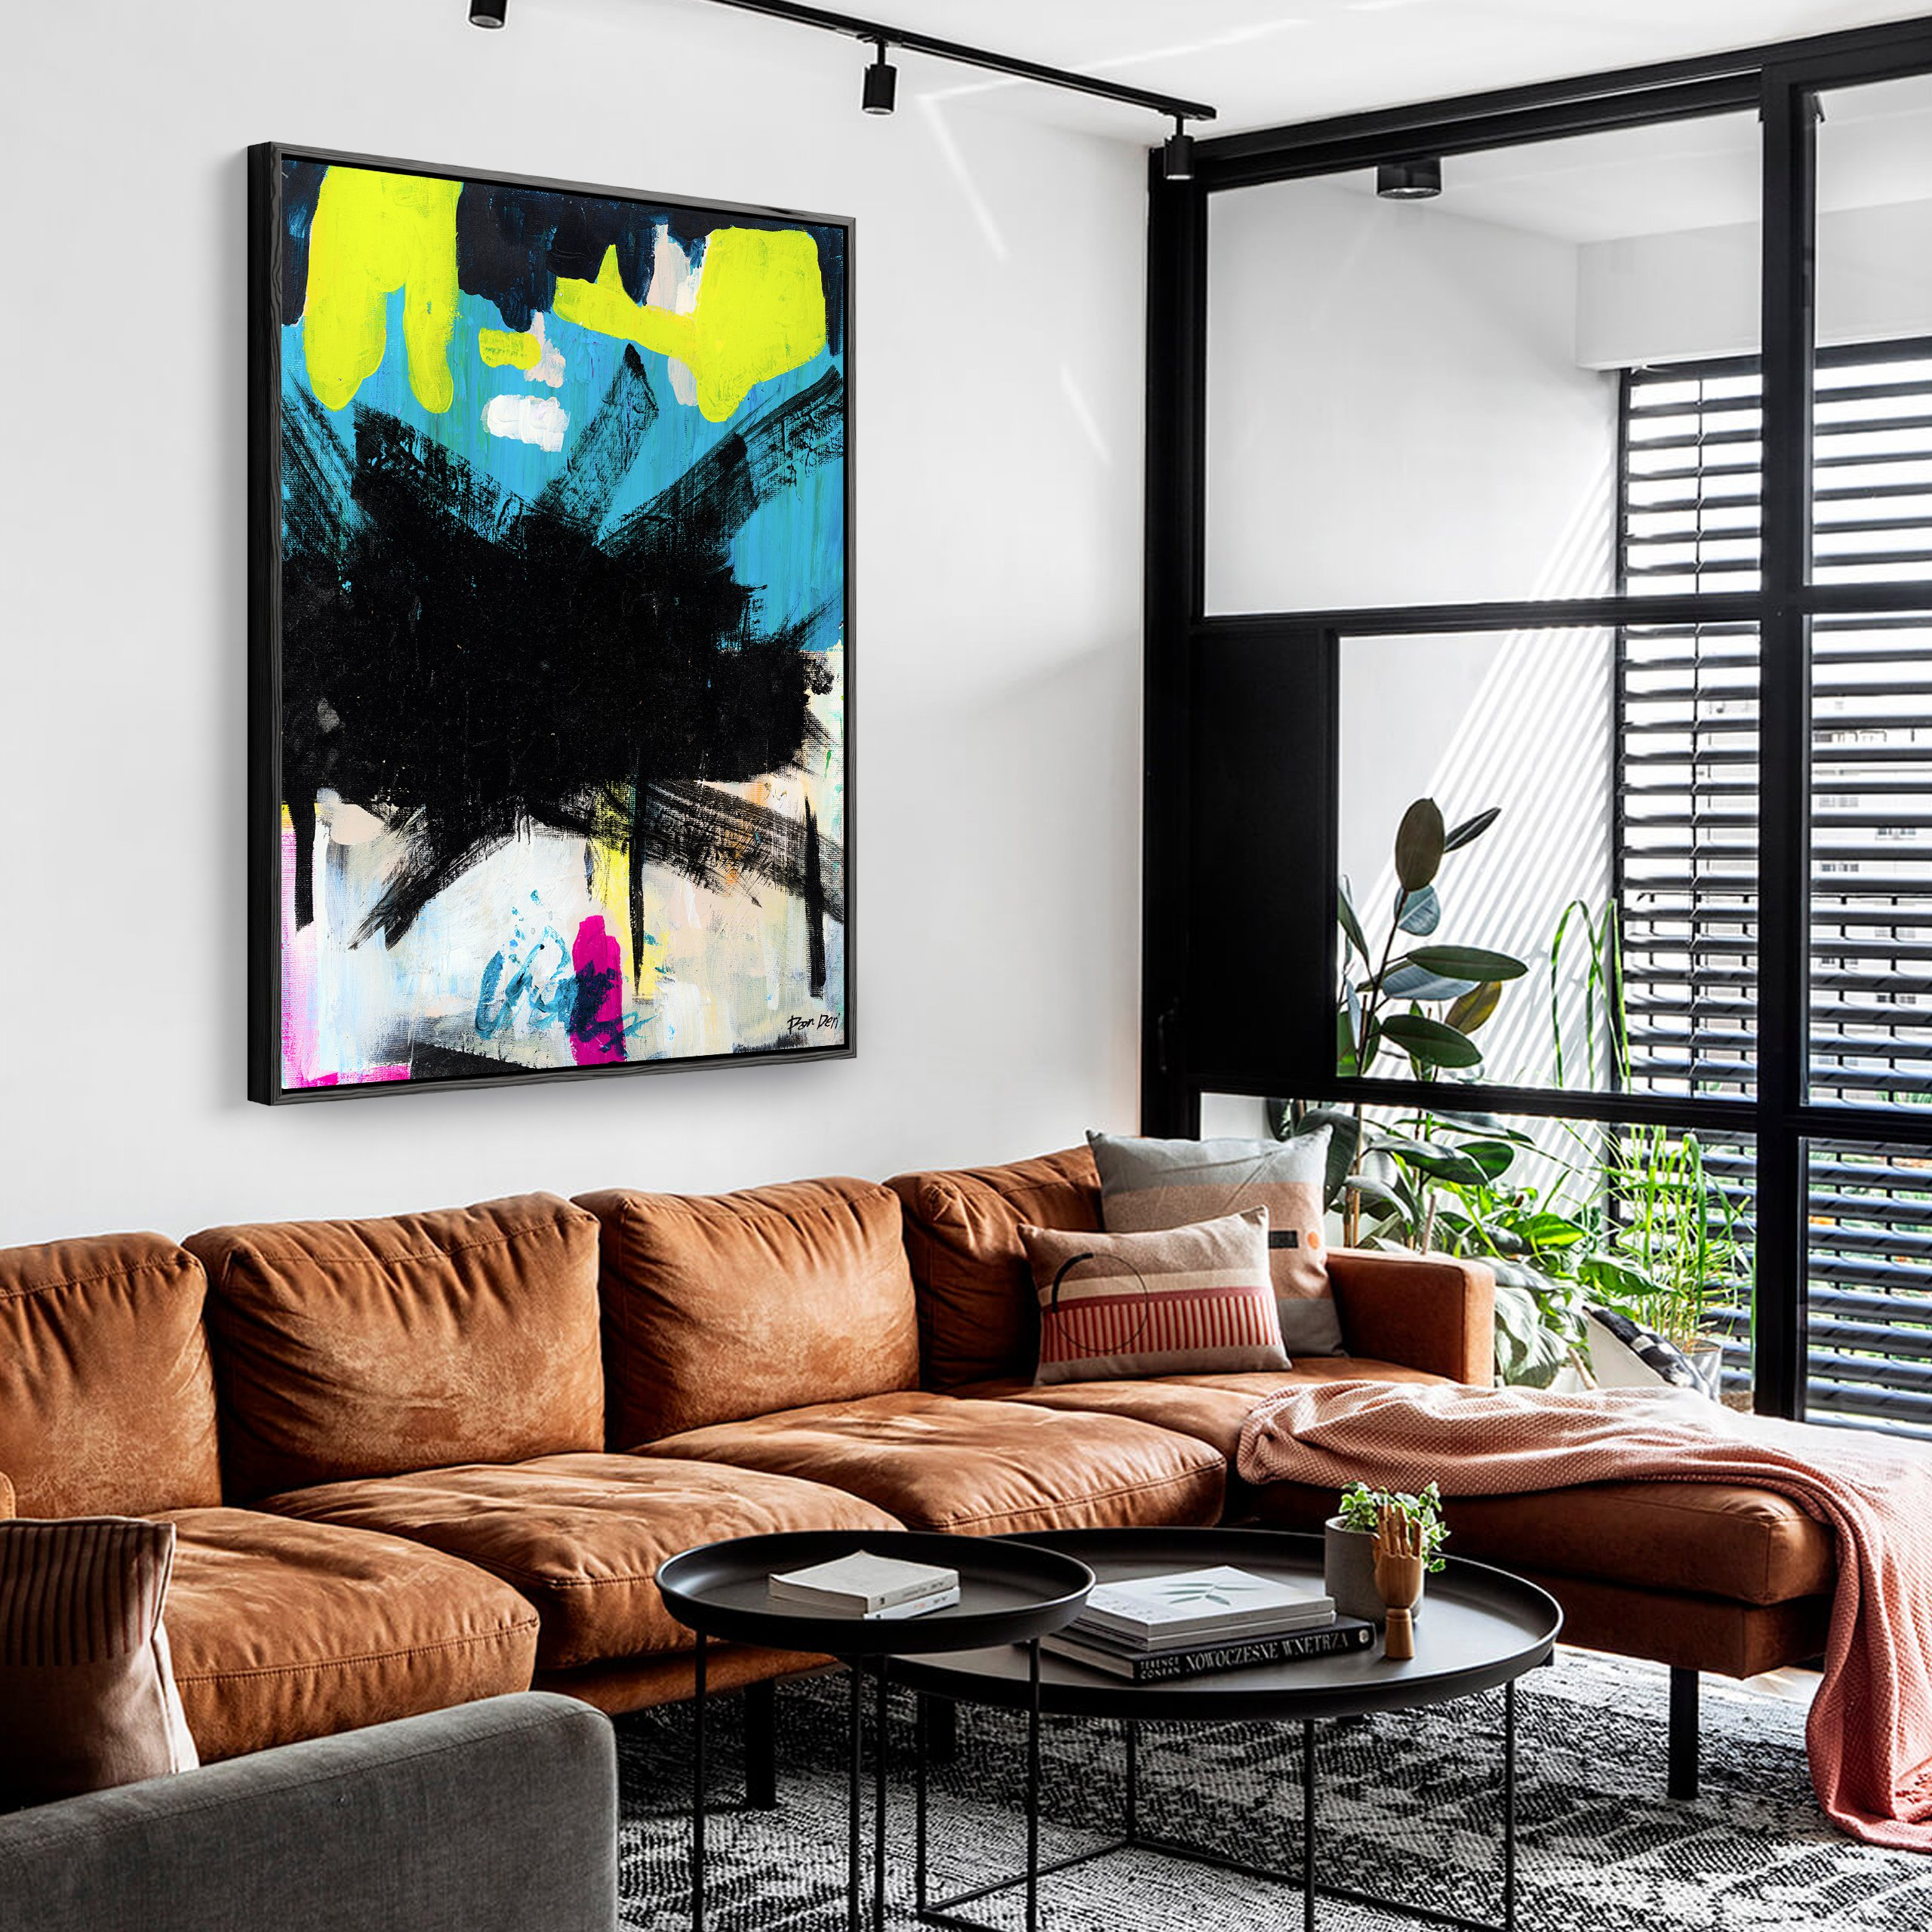 loft-ron-deri-5-black-art-abstract-painting-for-sale